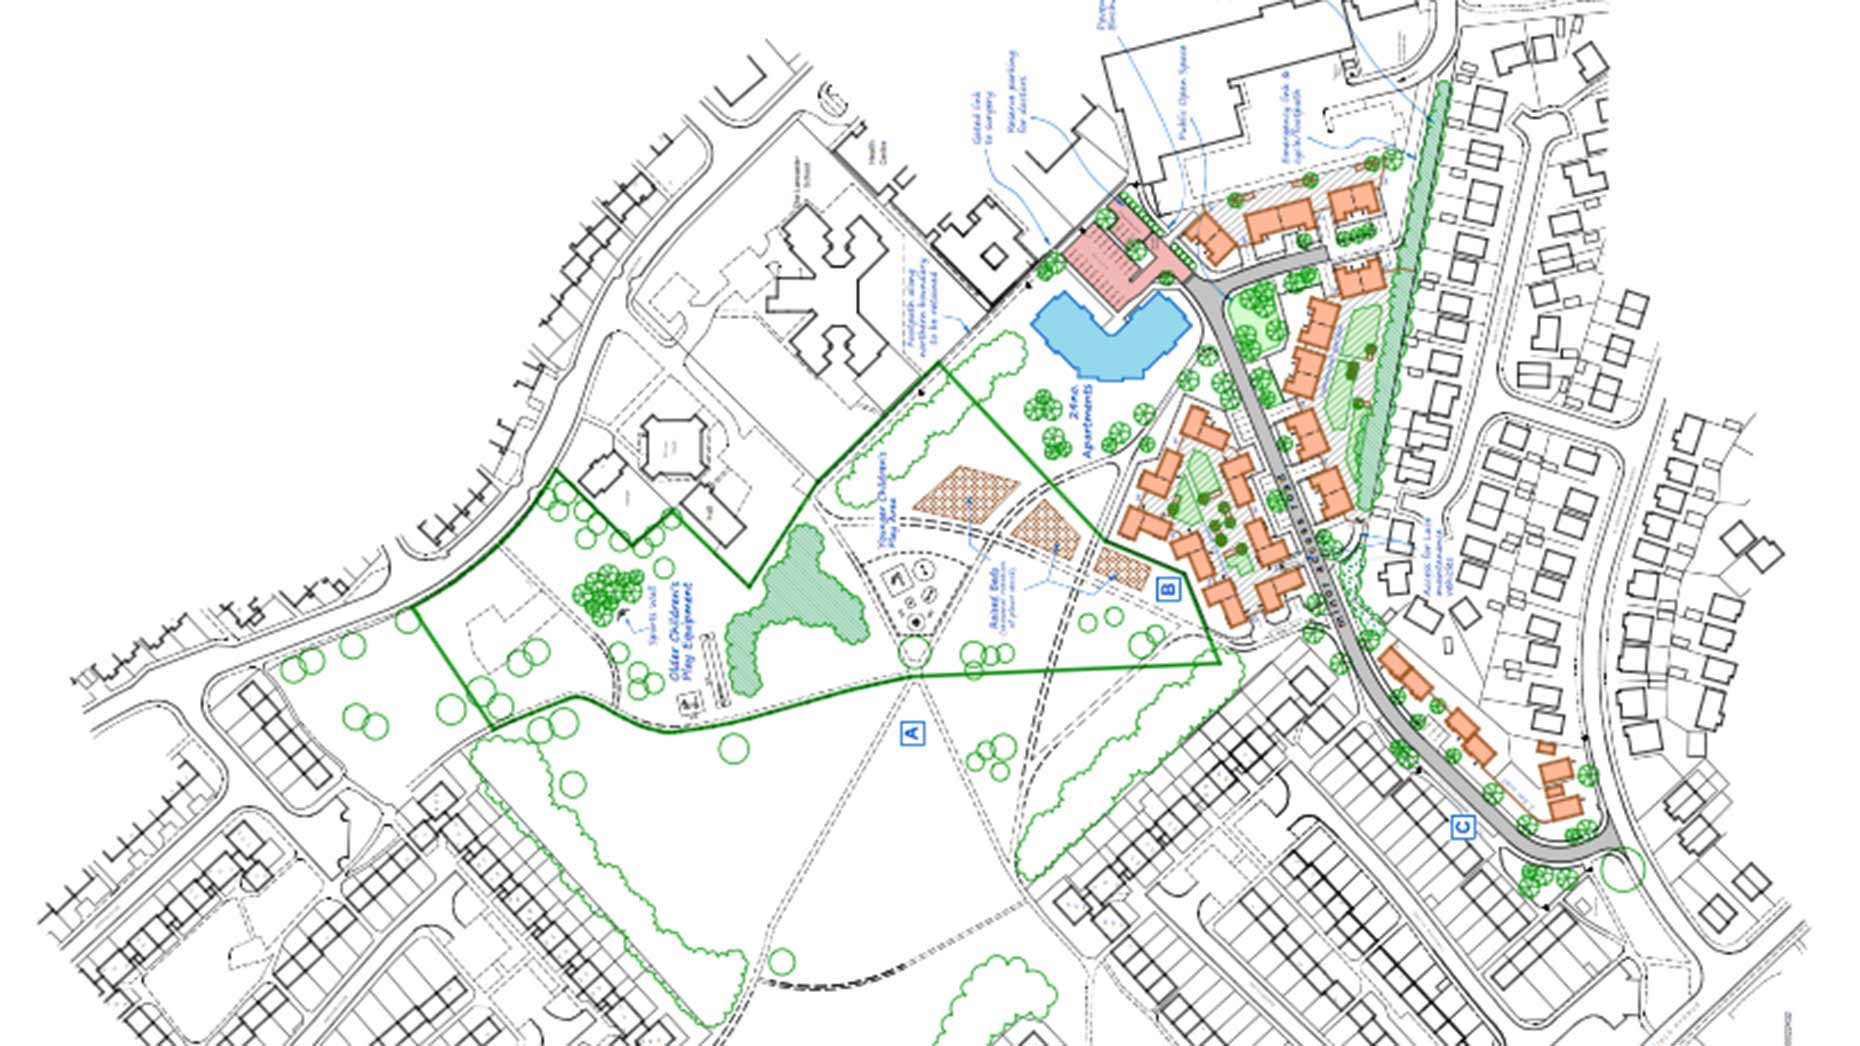 Birchwood group submits plans for 62 affordable homes